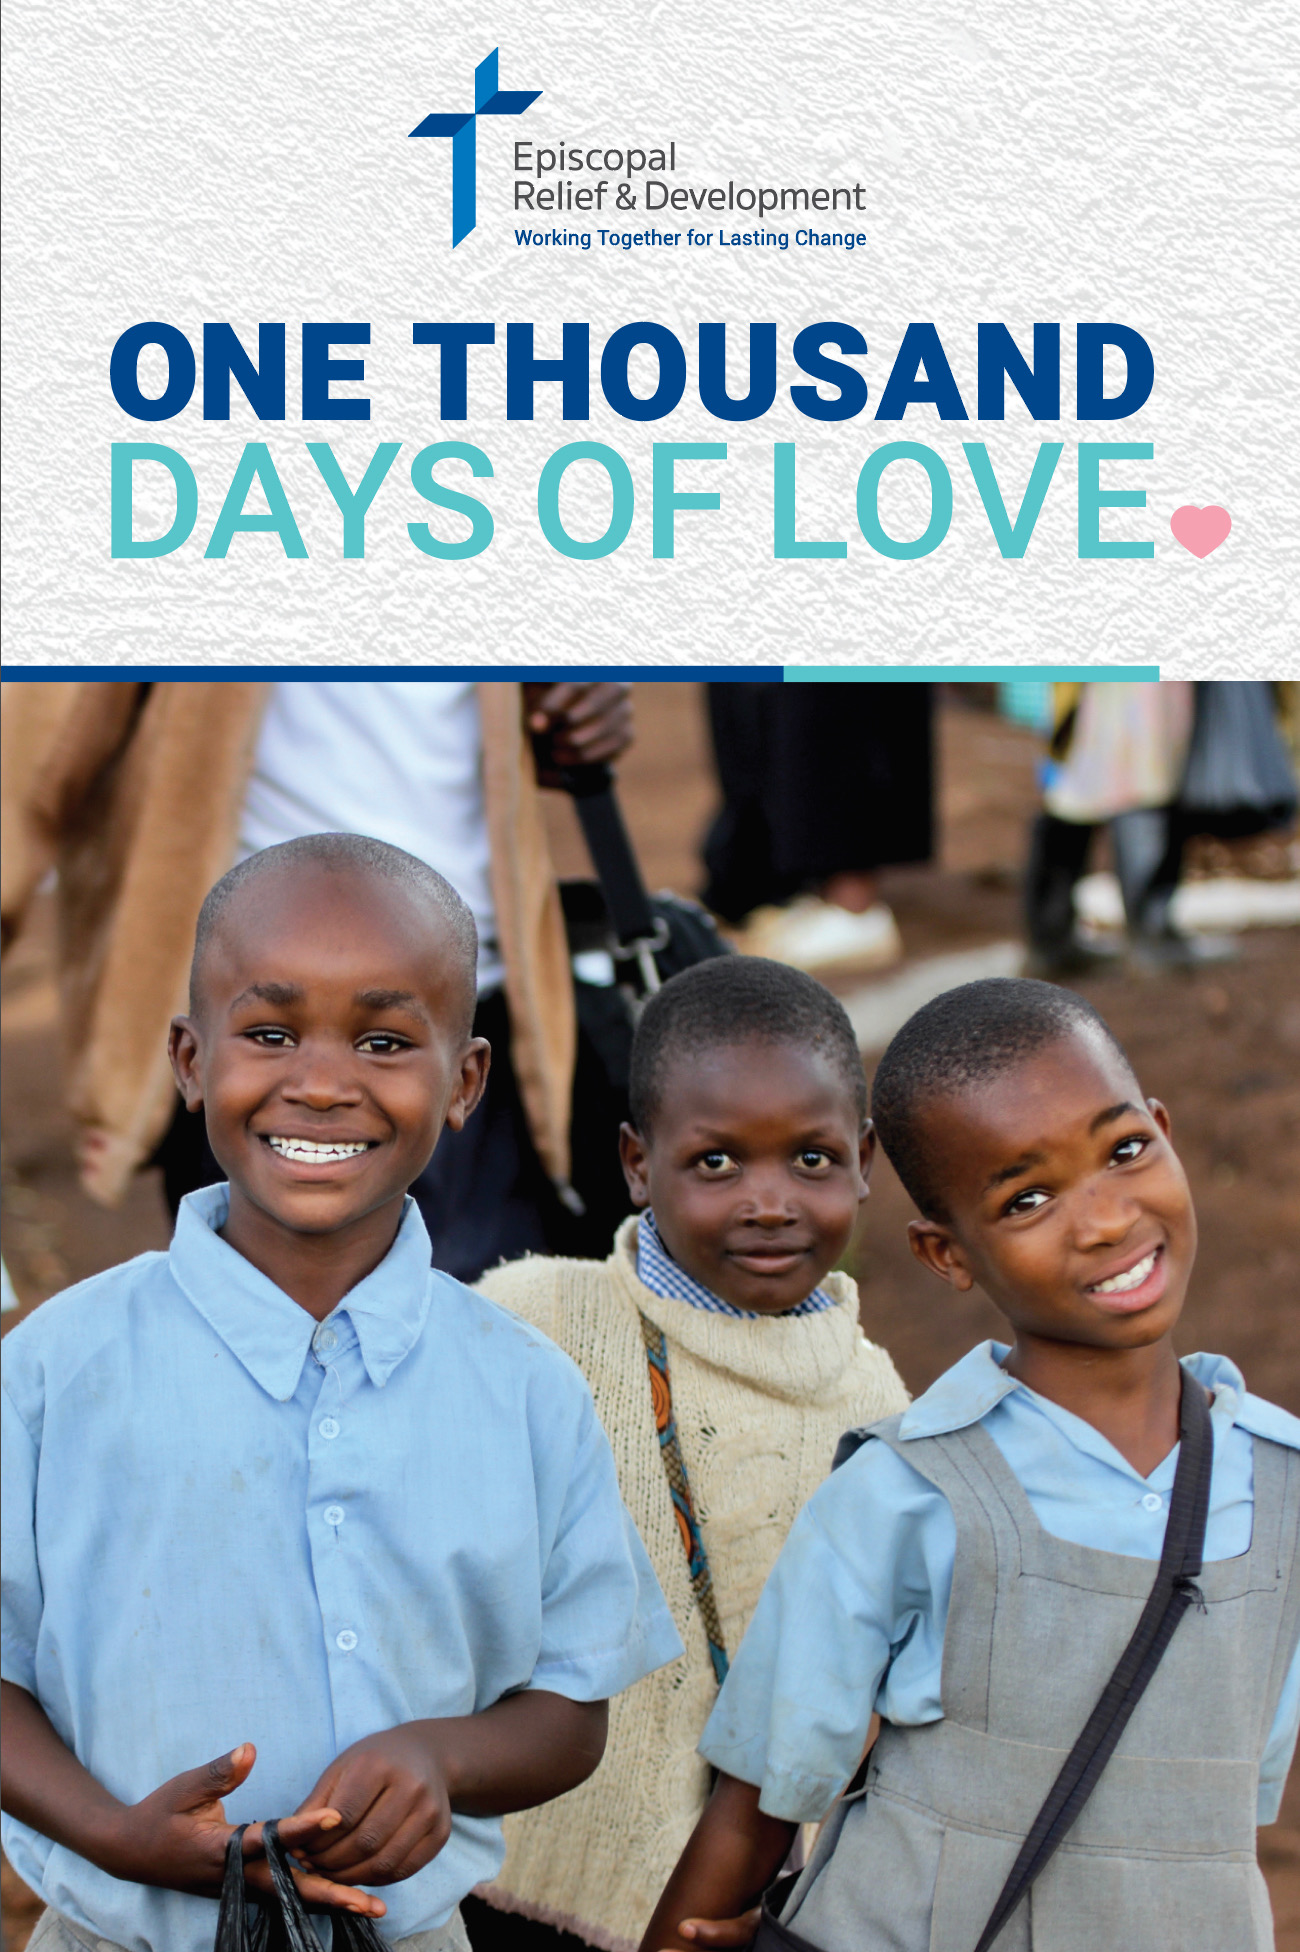 One Thousand Days of Love Campaign Brochure 2020